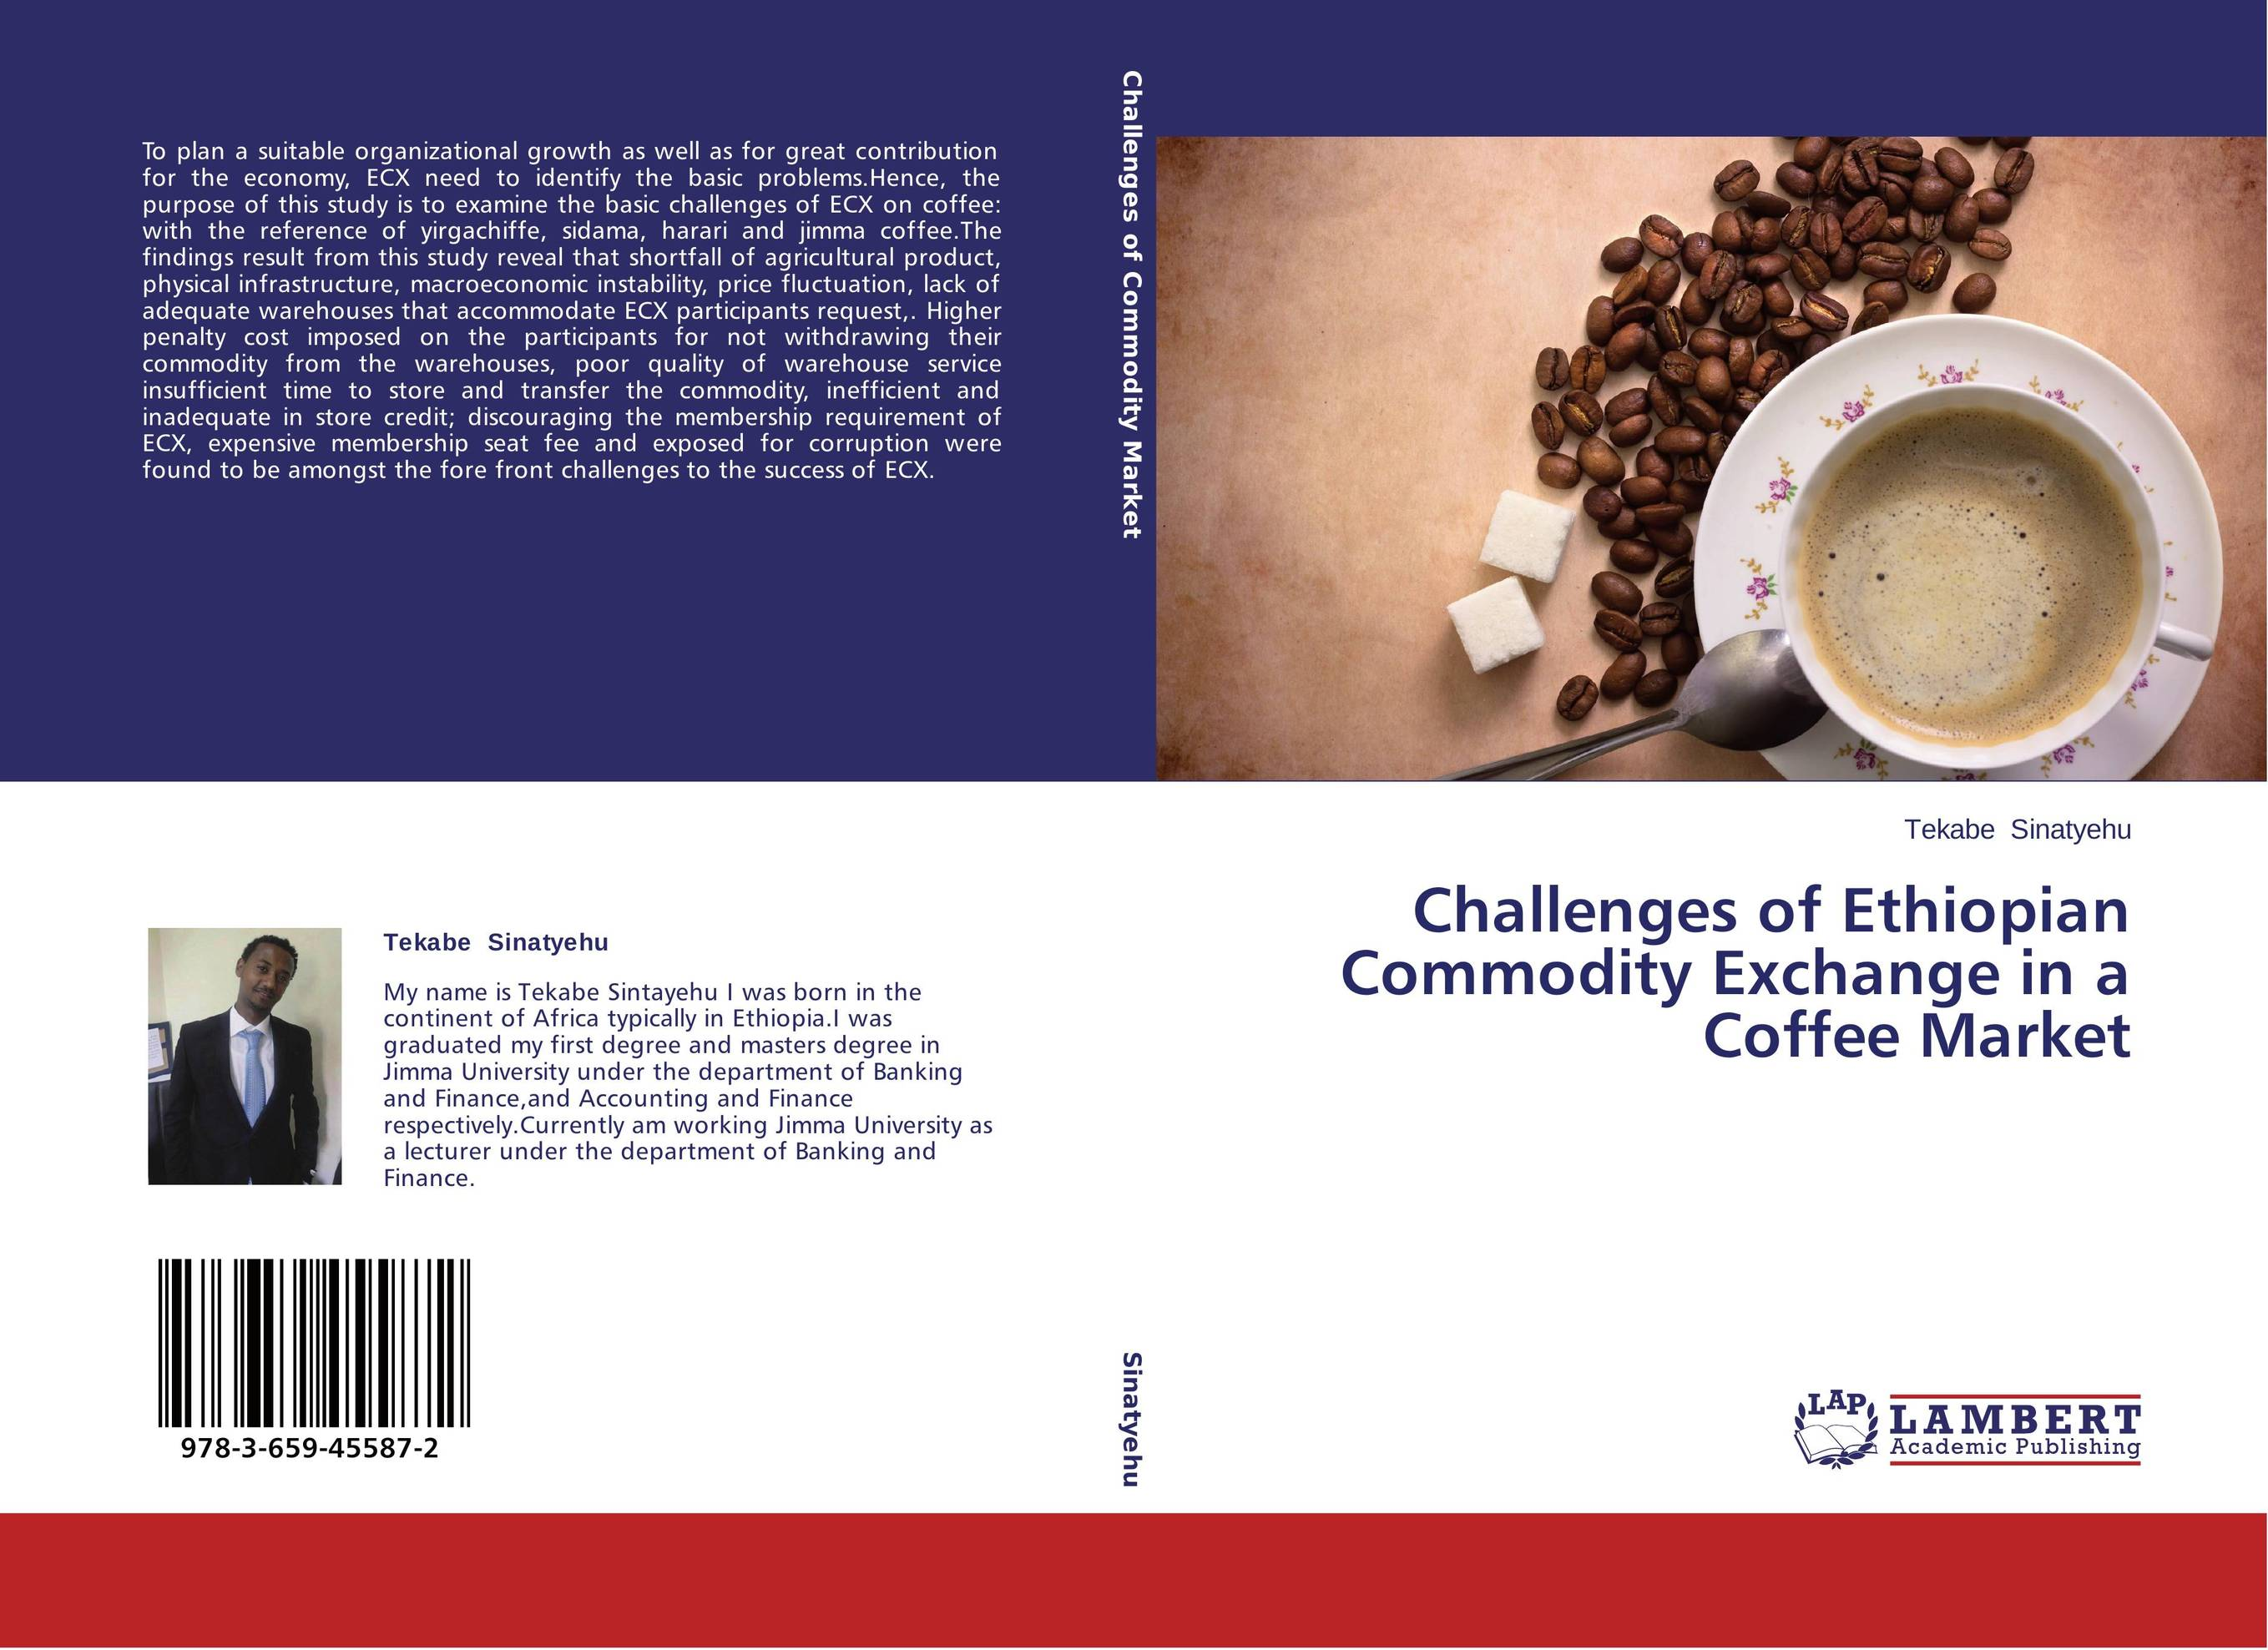 Challenges of Ethiopian Commodity Exchange in a Coffee Market игрушка ecx crawler temper red white ecx00012t1